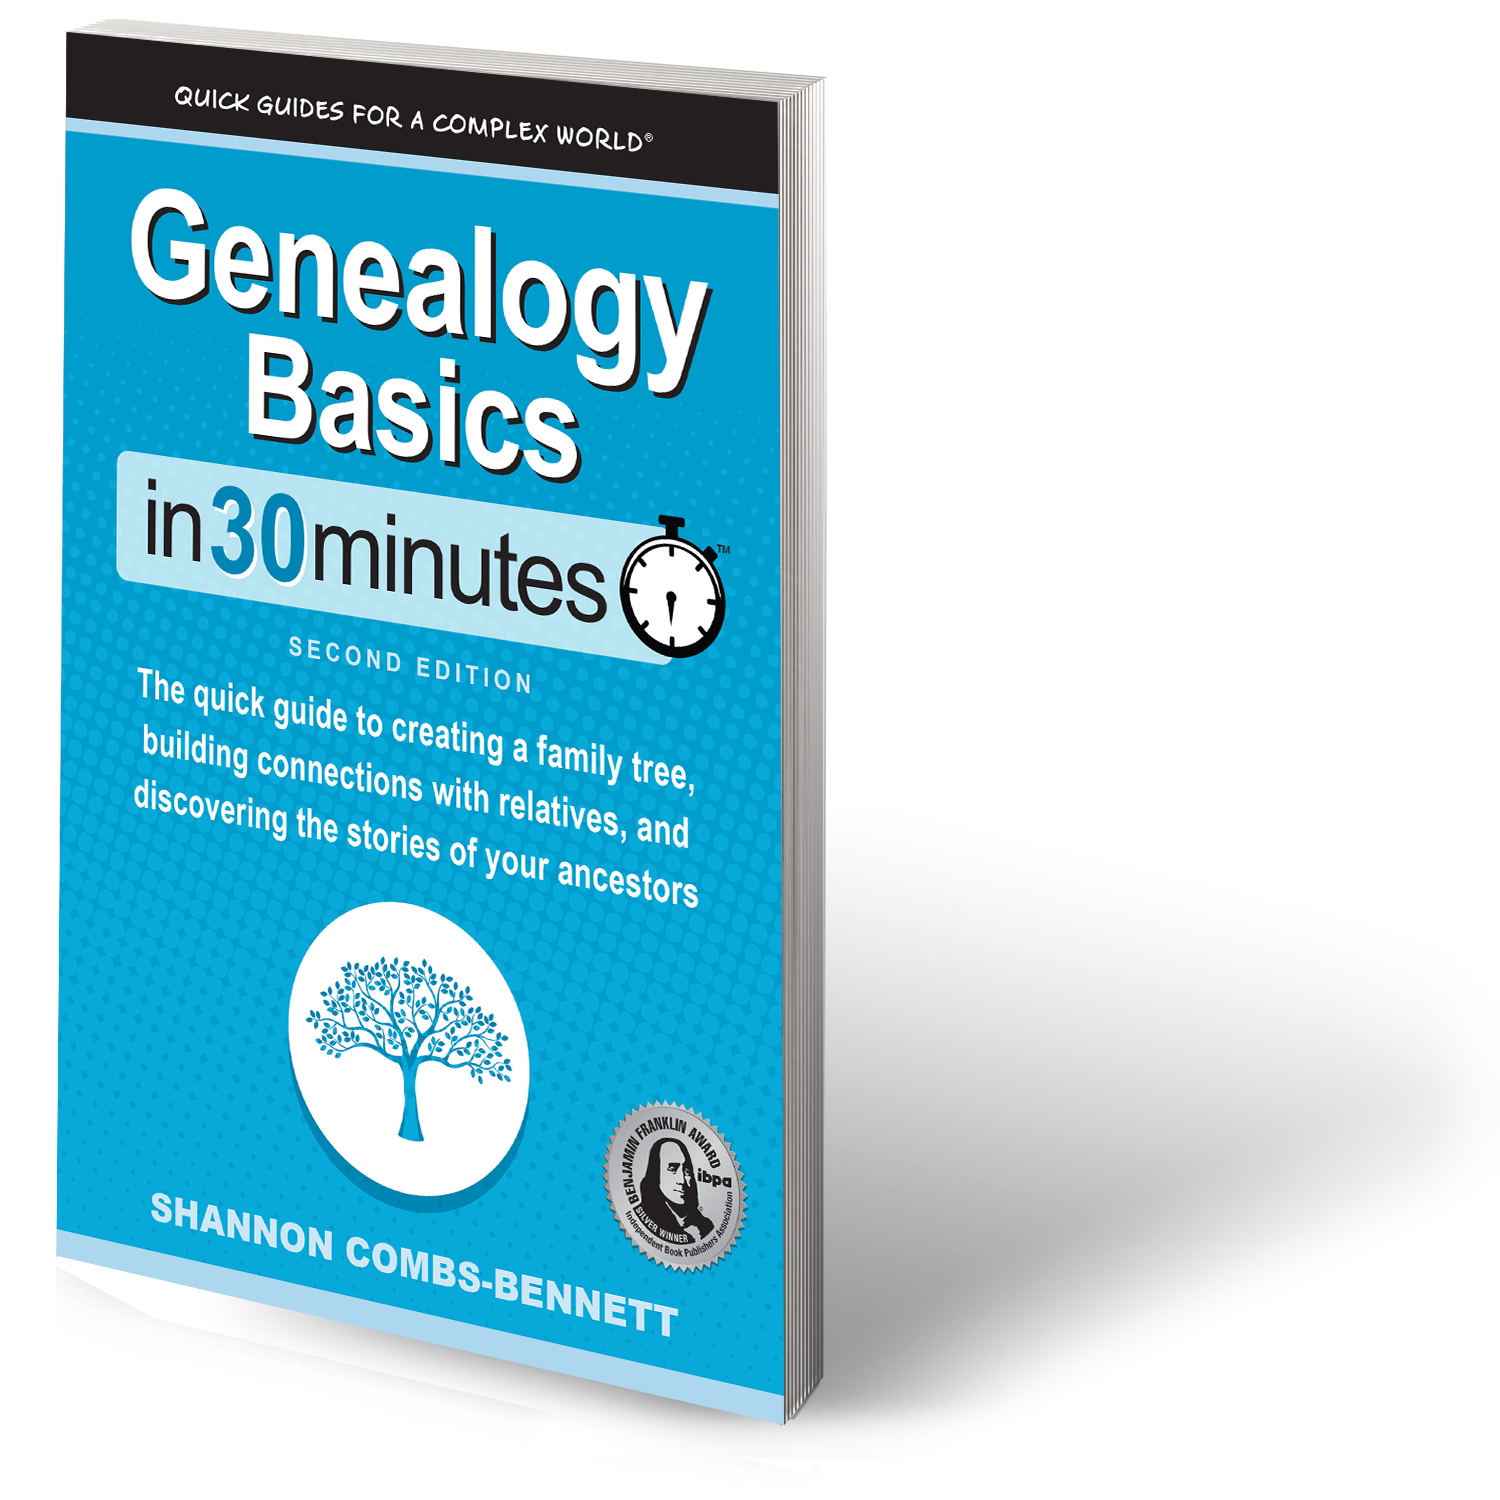 Genealogy Basics In 30 Minutes, Second Edition